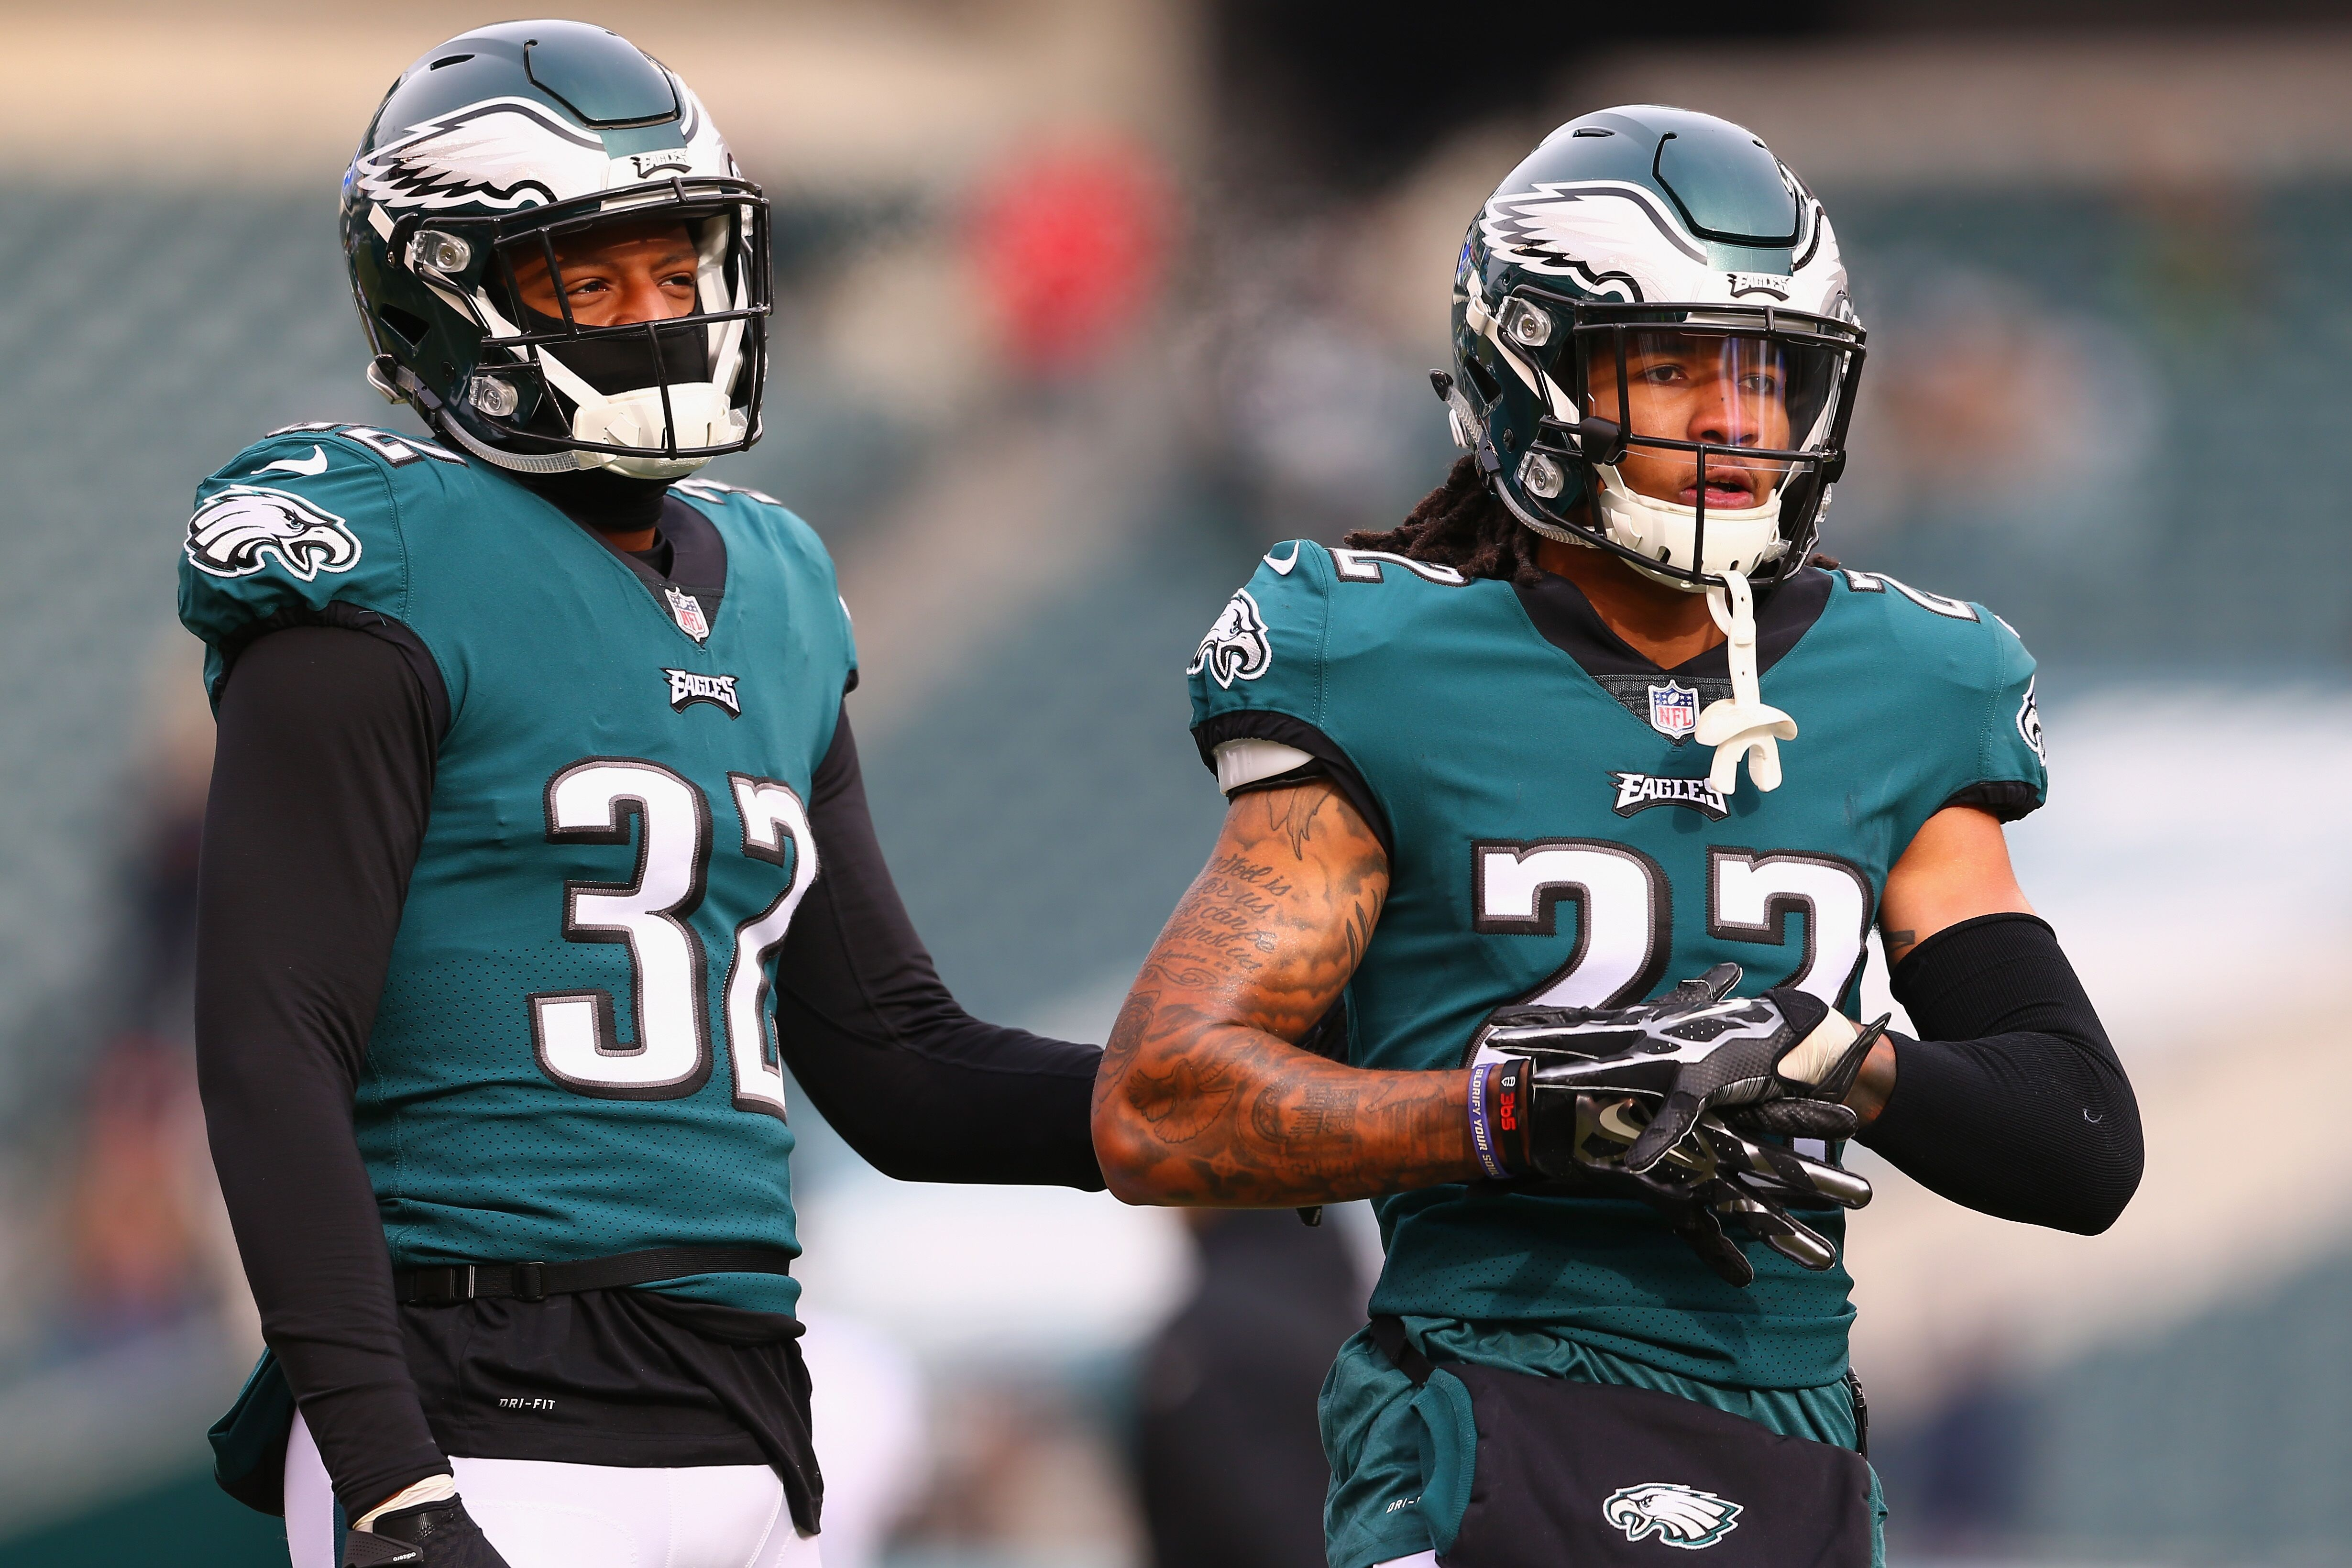 Next man up: Philadelphia Eagles young players need to mature quickly